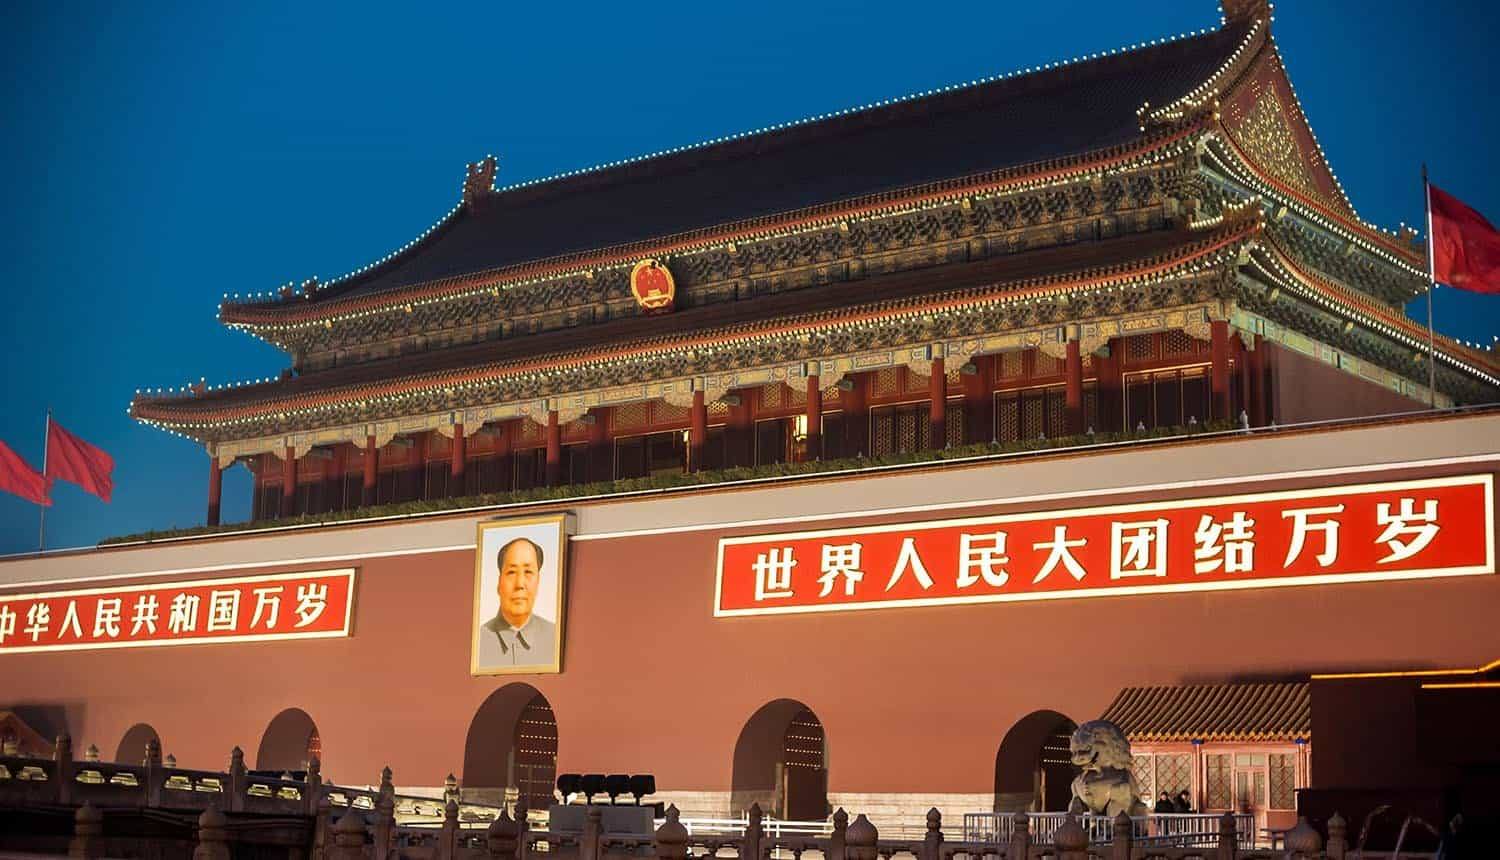 Tiananmen Square in China showing Chinese data laws